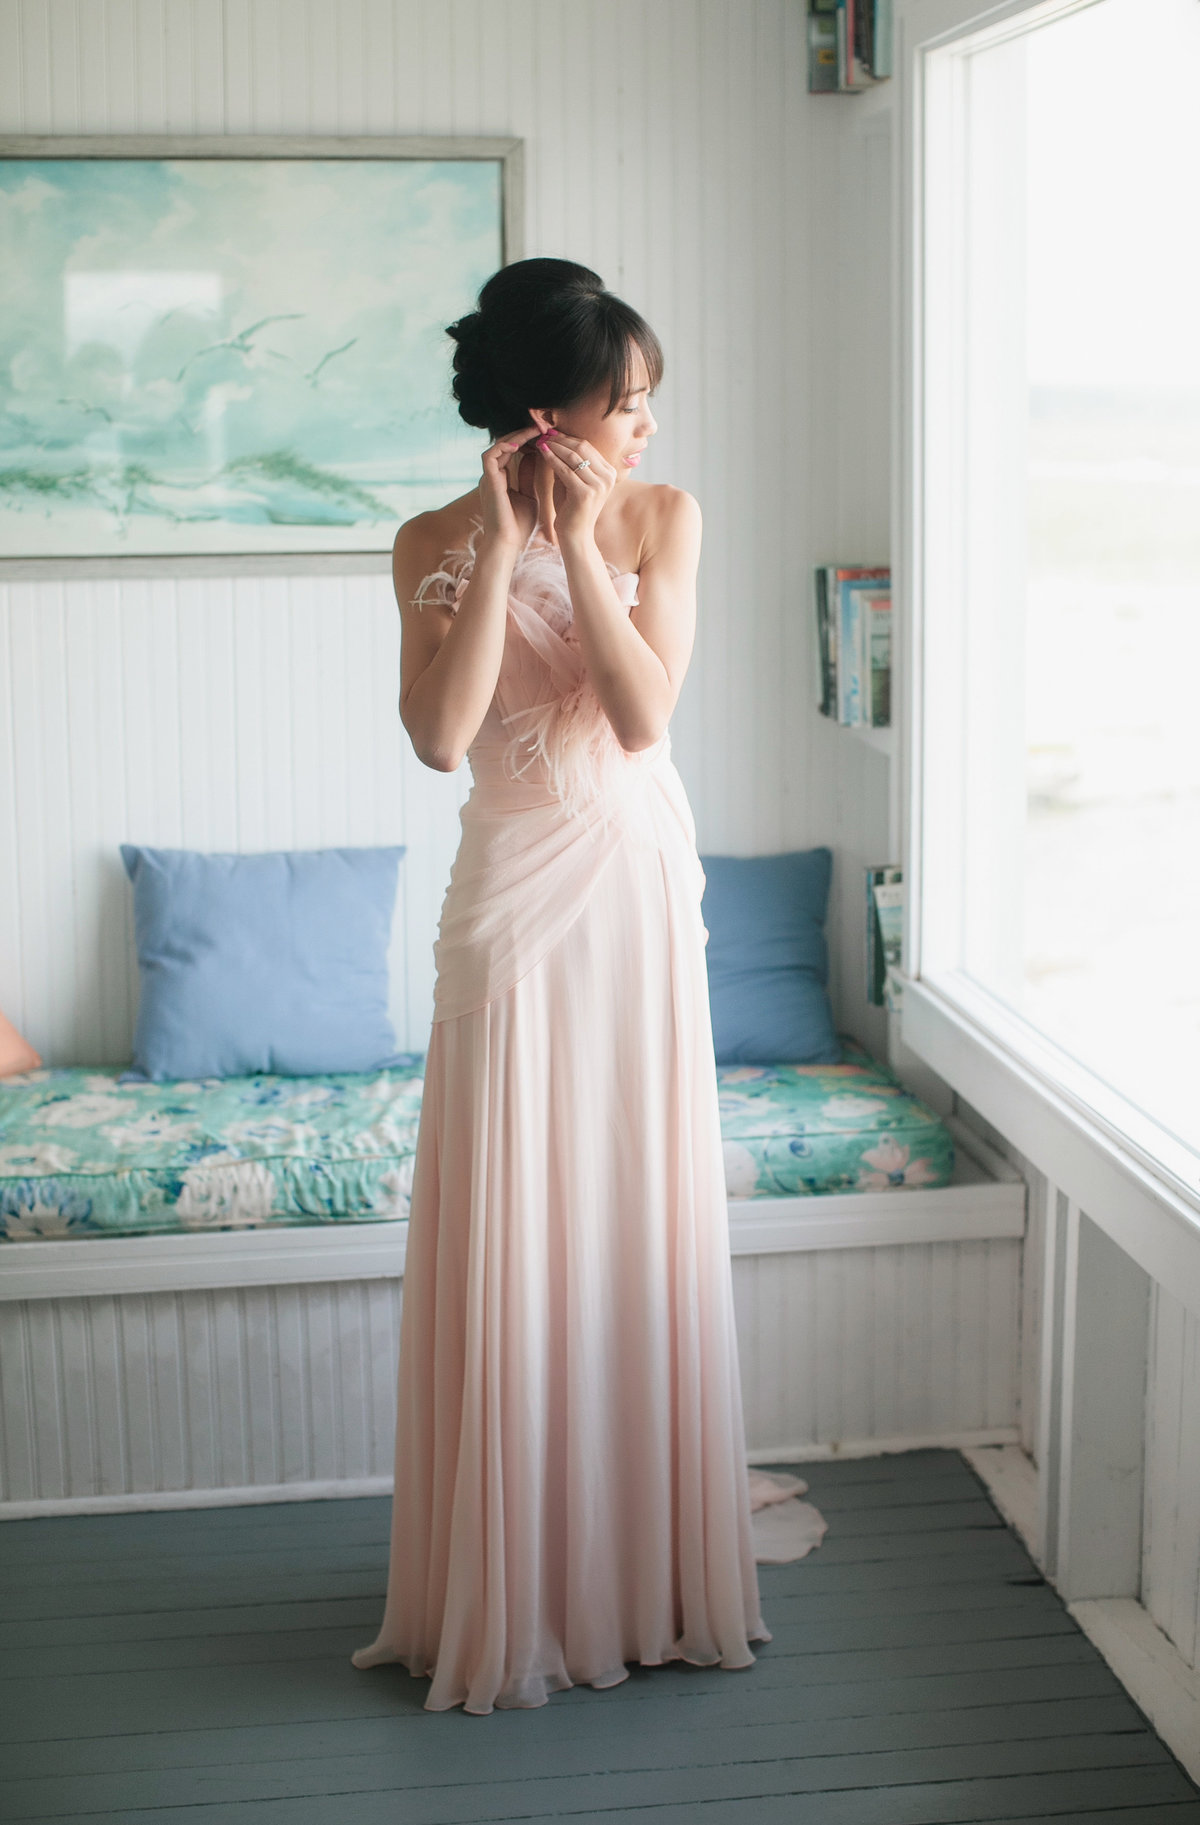 EastCoastWeddingPhotographer_BridalPortrait_CatherineRhodesPhotography